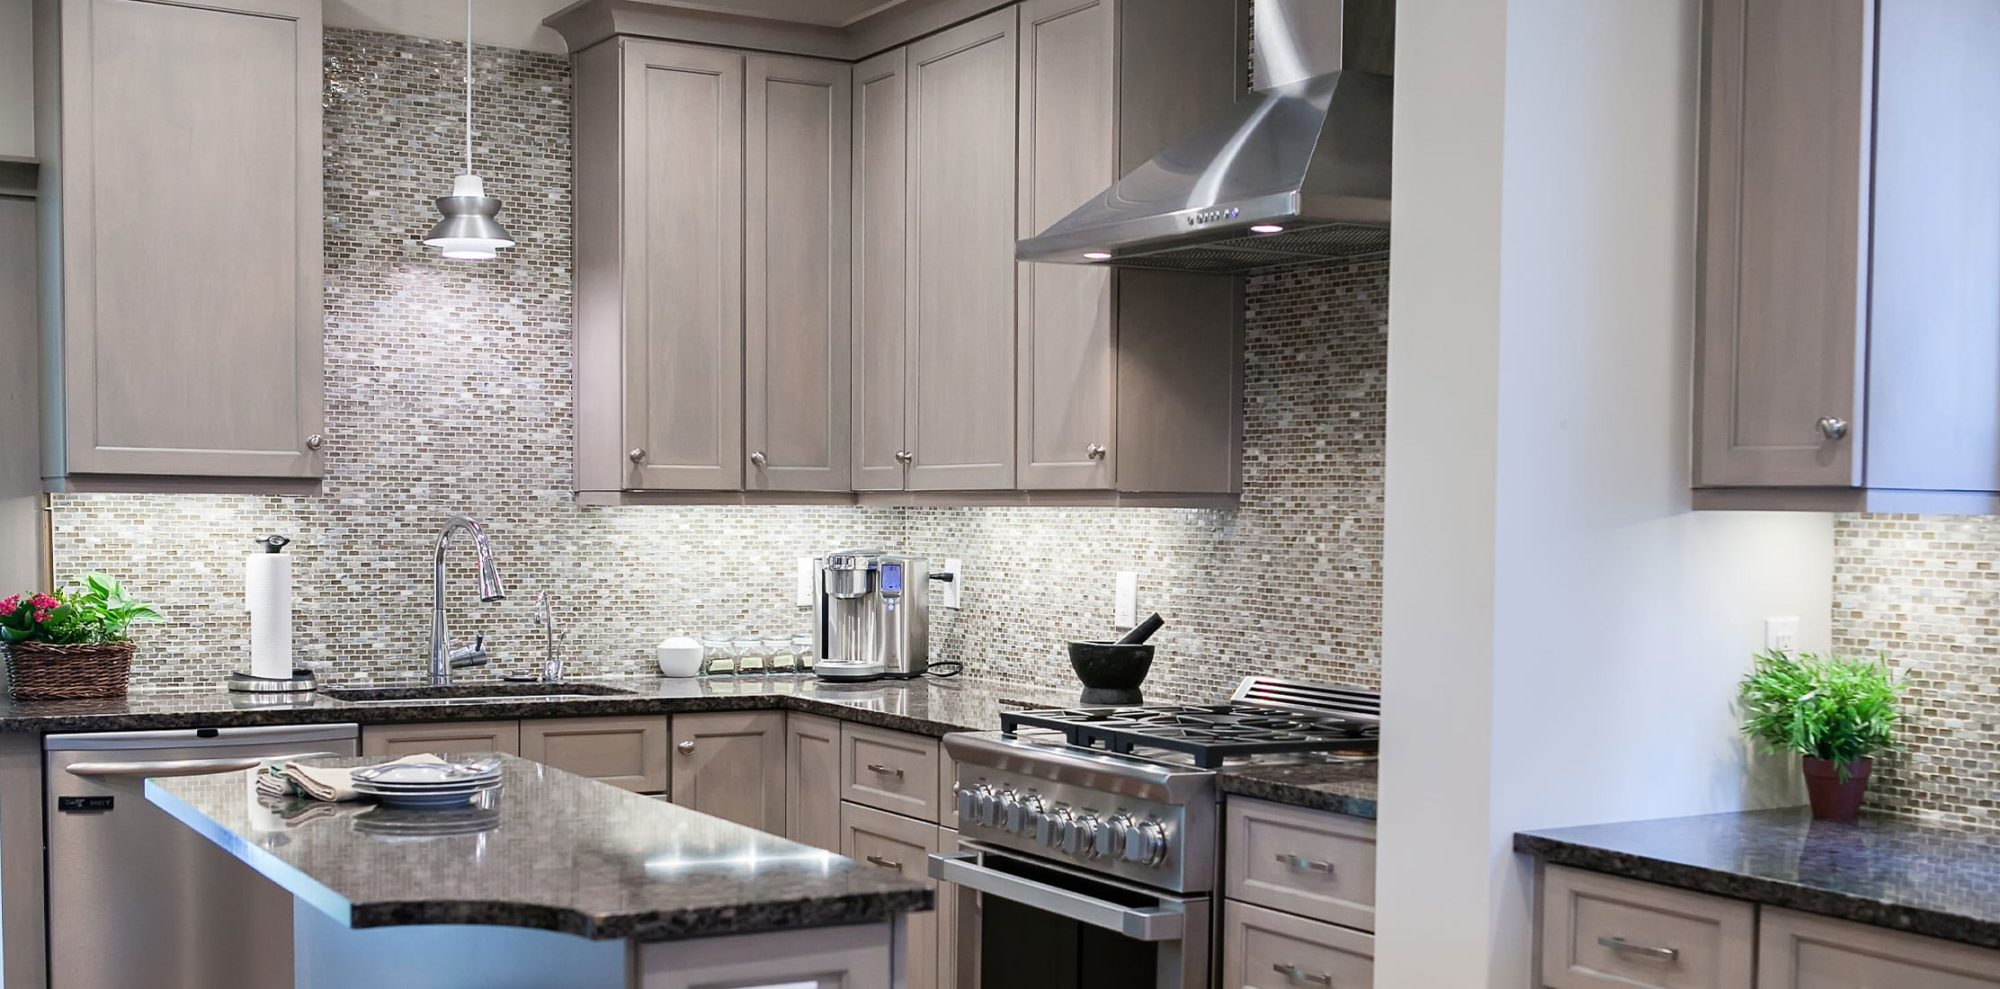 Cool gray kitchen with counter to ceiling backsplash in renovated kitchen